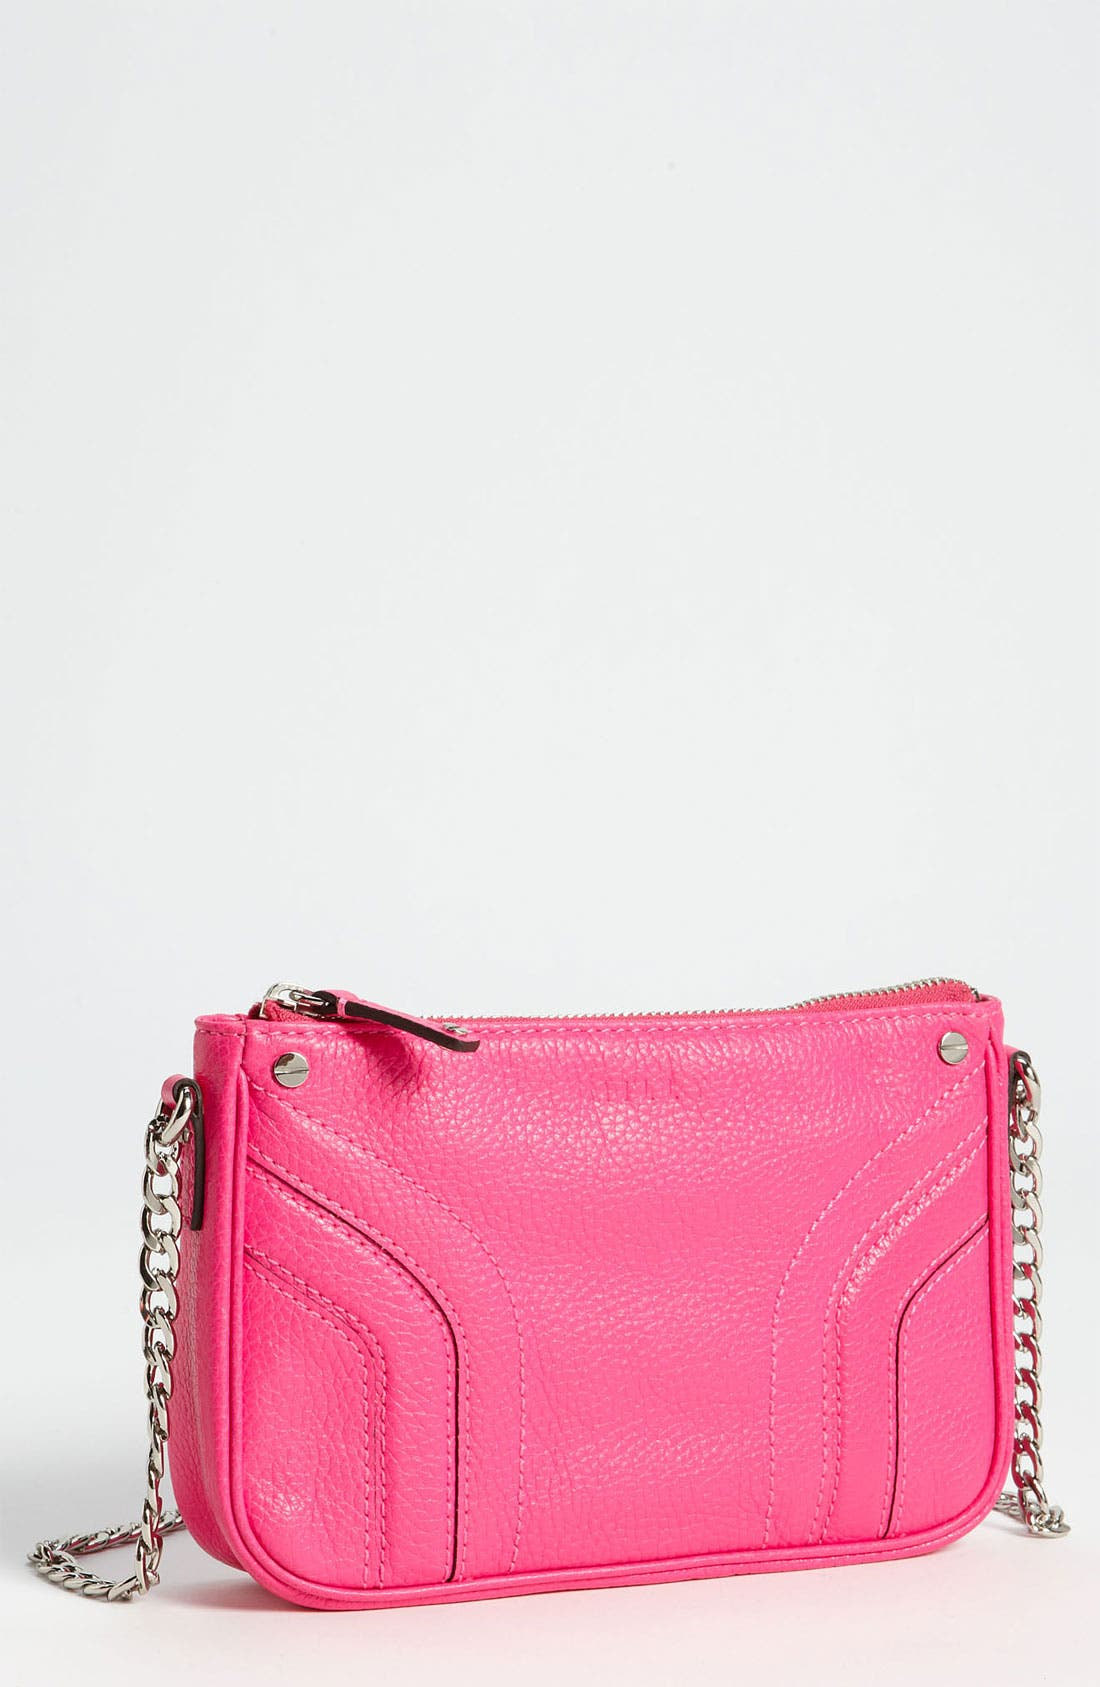 Alternate Image 1 Selected - Milly 'Zoey' Crossbody Bag